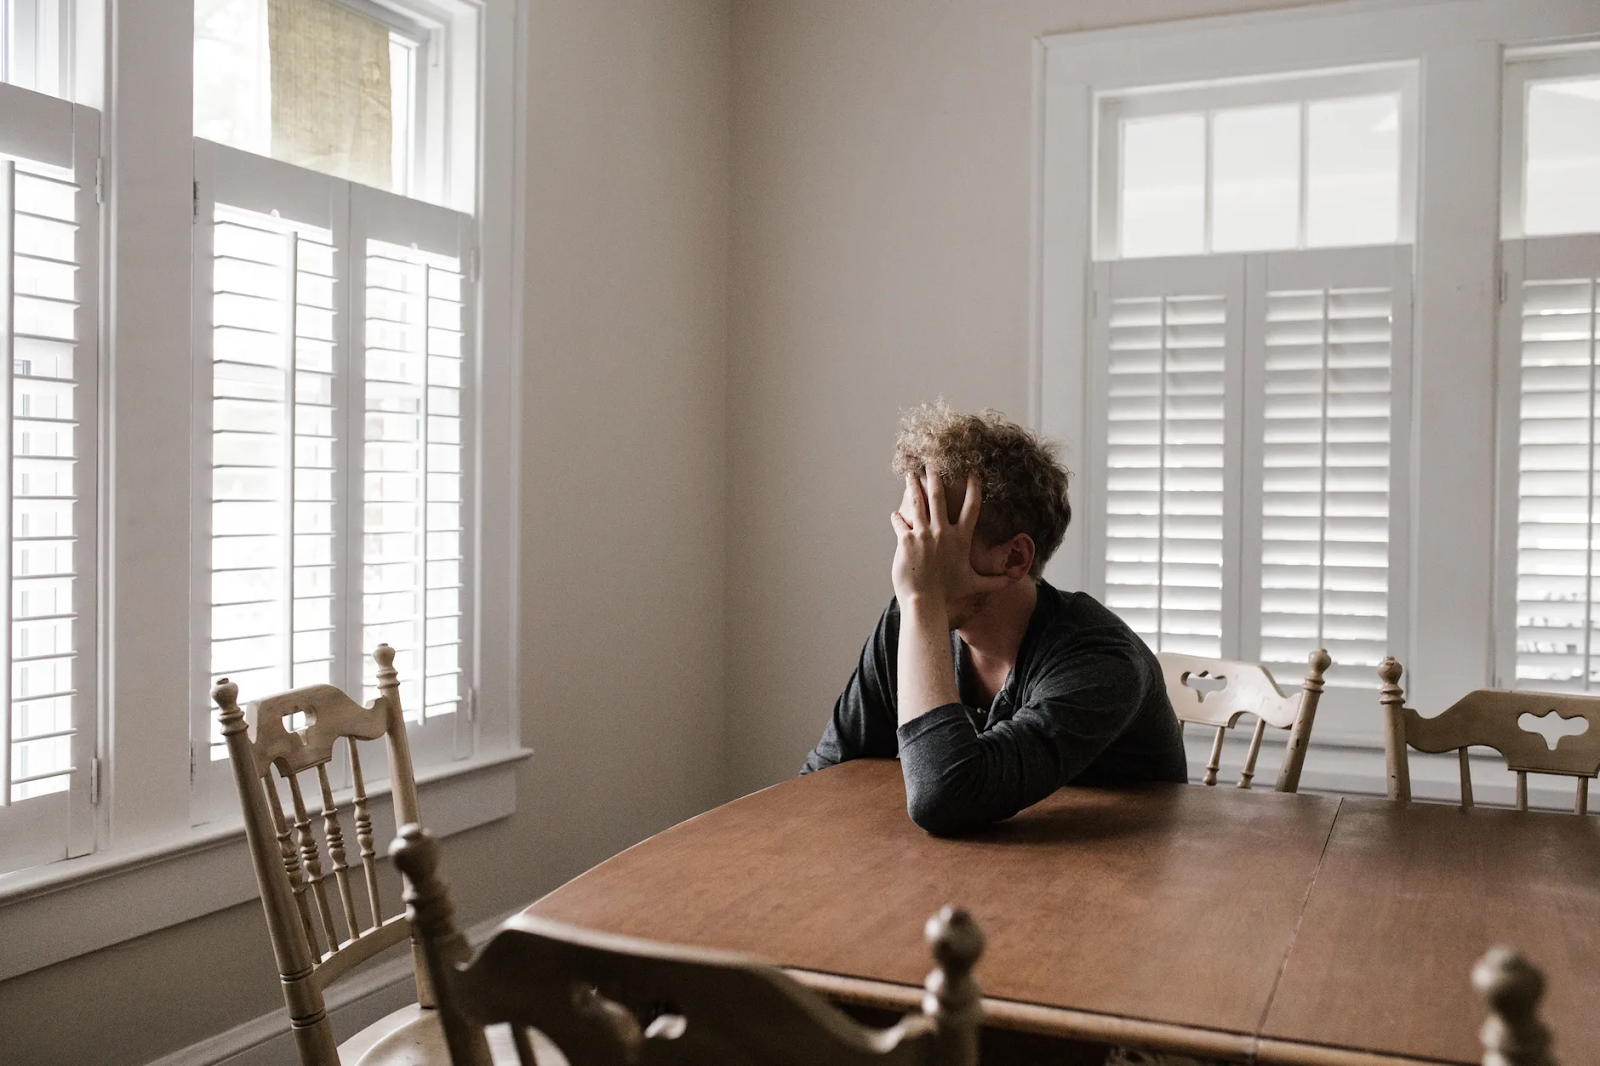 A man tiredly clutches his head in his hand as he leans across a dining room table